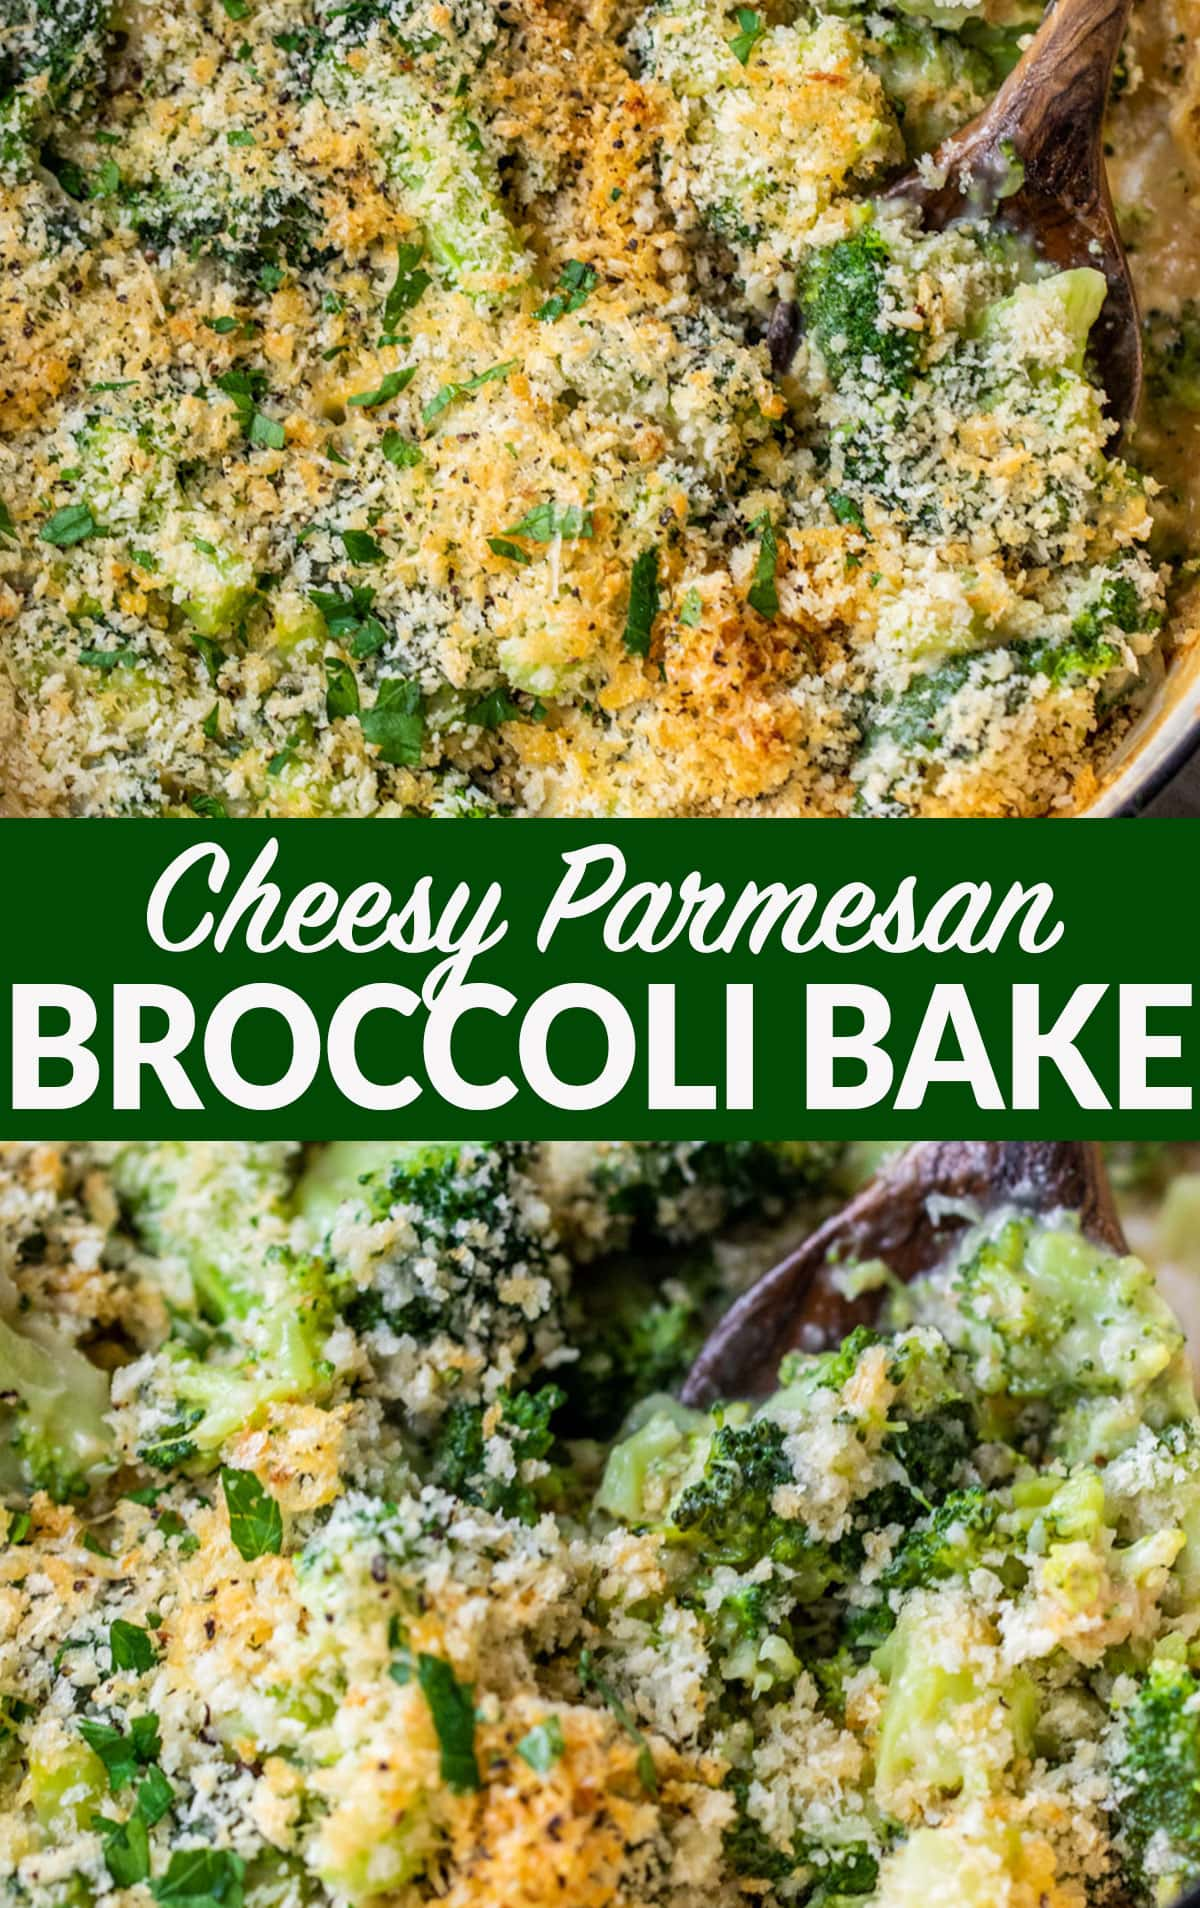 Cheesy Parmesan Broccoli Casserole with Crispy Breadcrumb Topping. A family favorite recipe that goes with any meal!